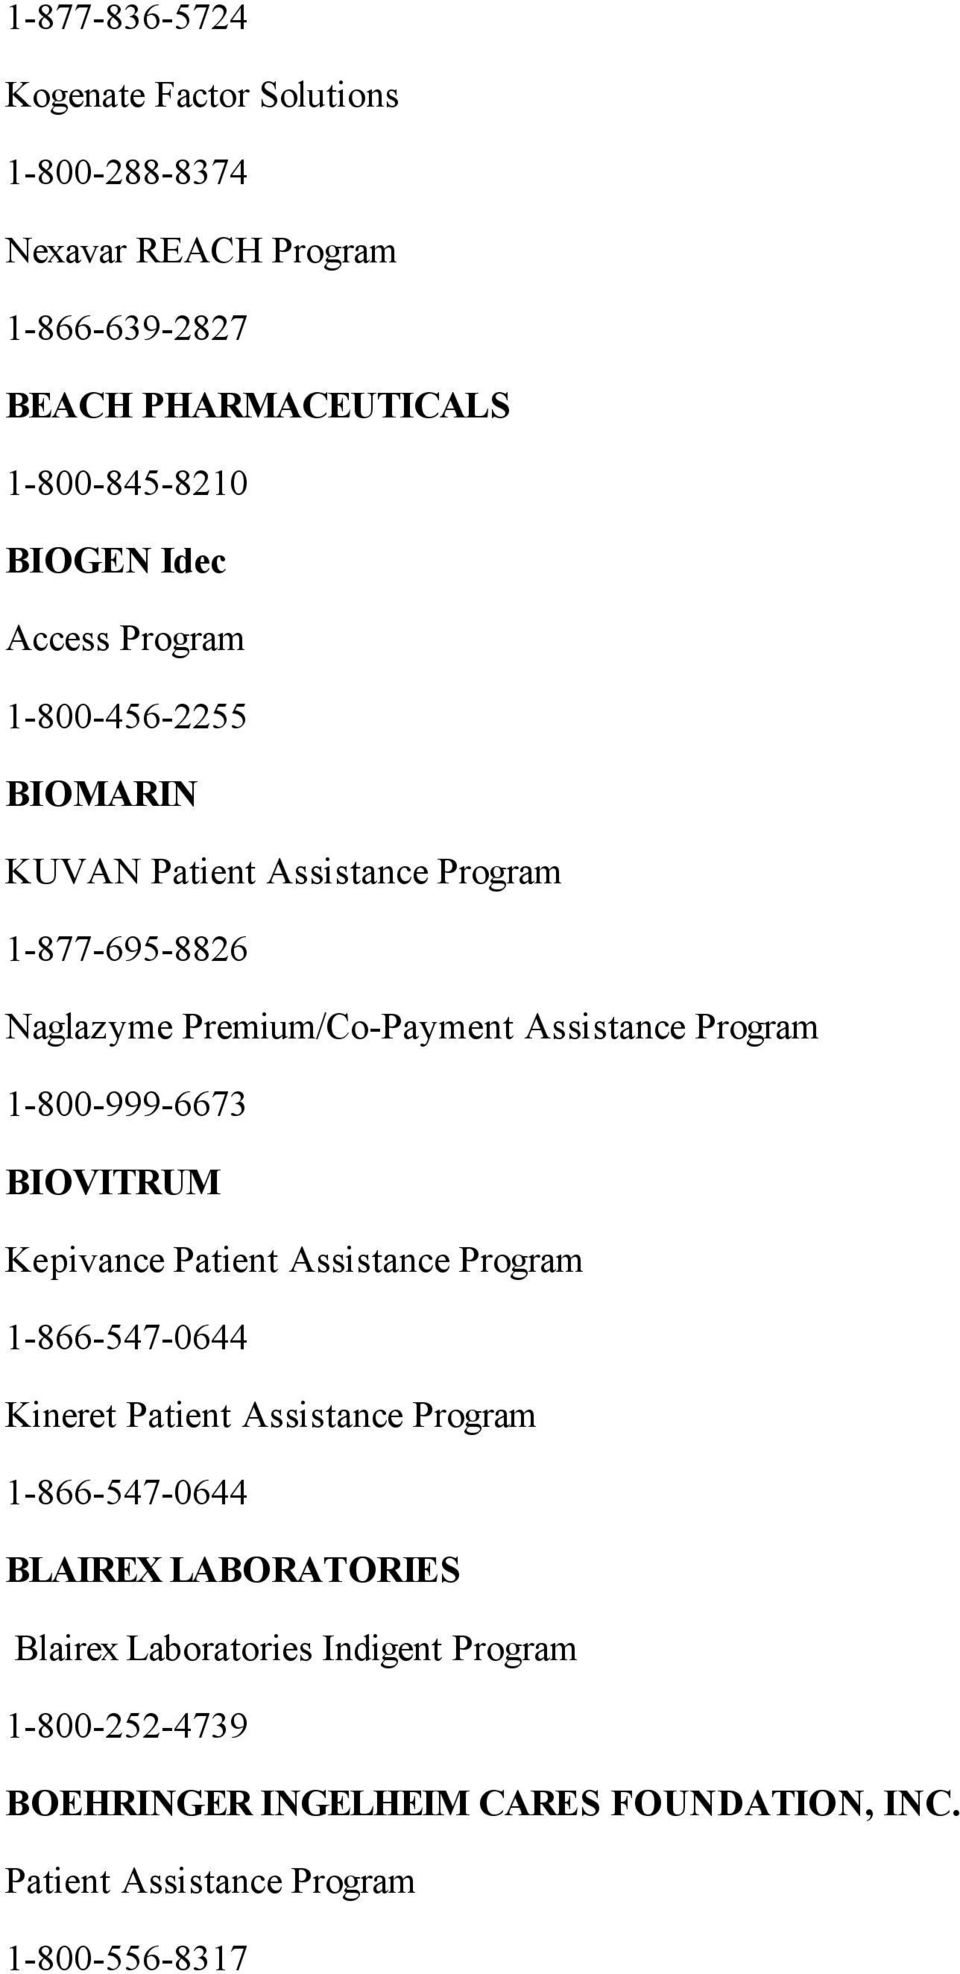 1-800-999-6673 BIOVITRUM Kepivance Patient Assistance Program 1-866-547-0644 Kineret Patient Assistance Program 1-866-547-0644 BLAIREX